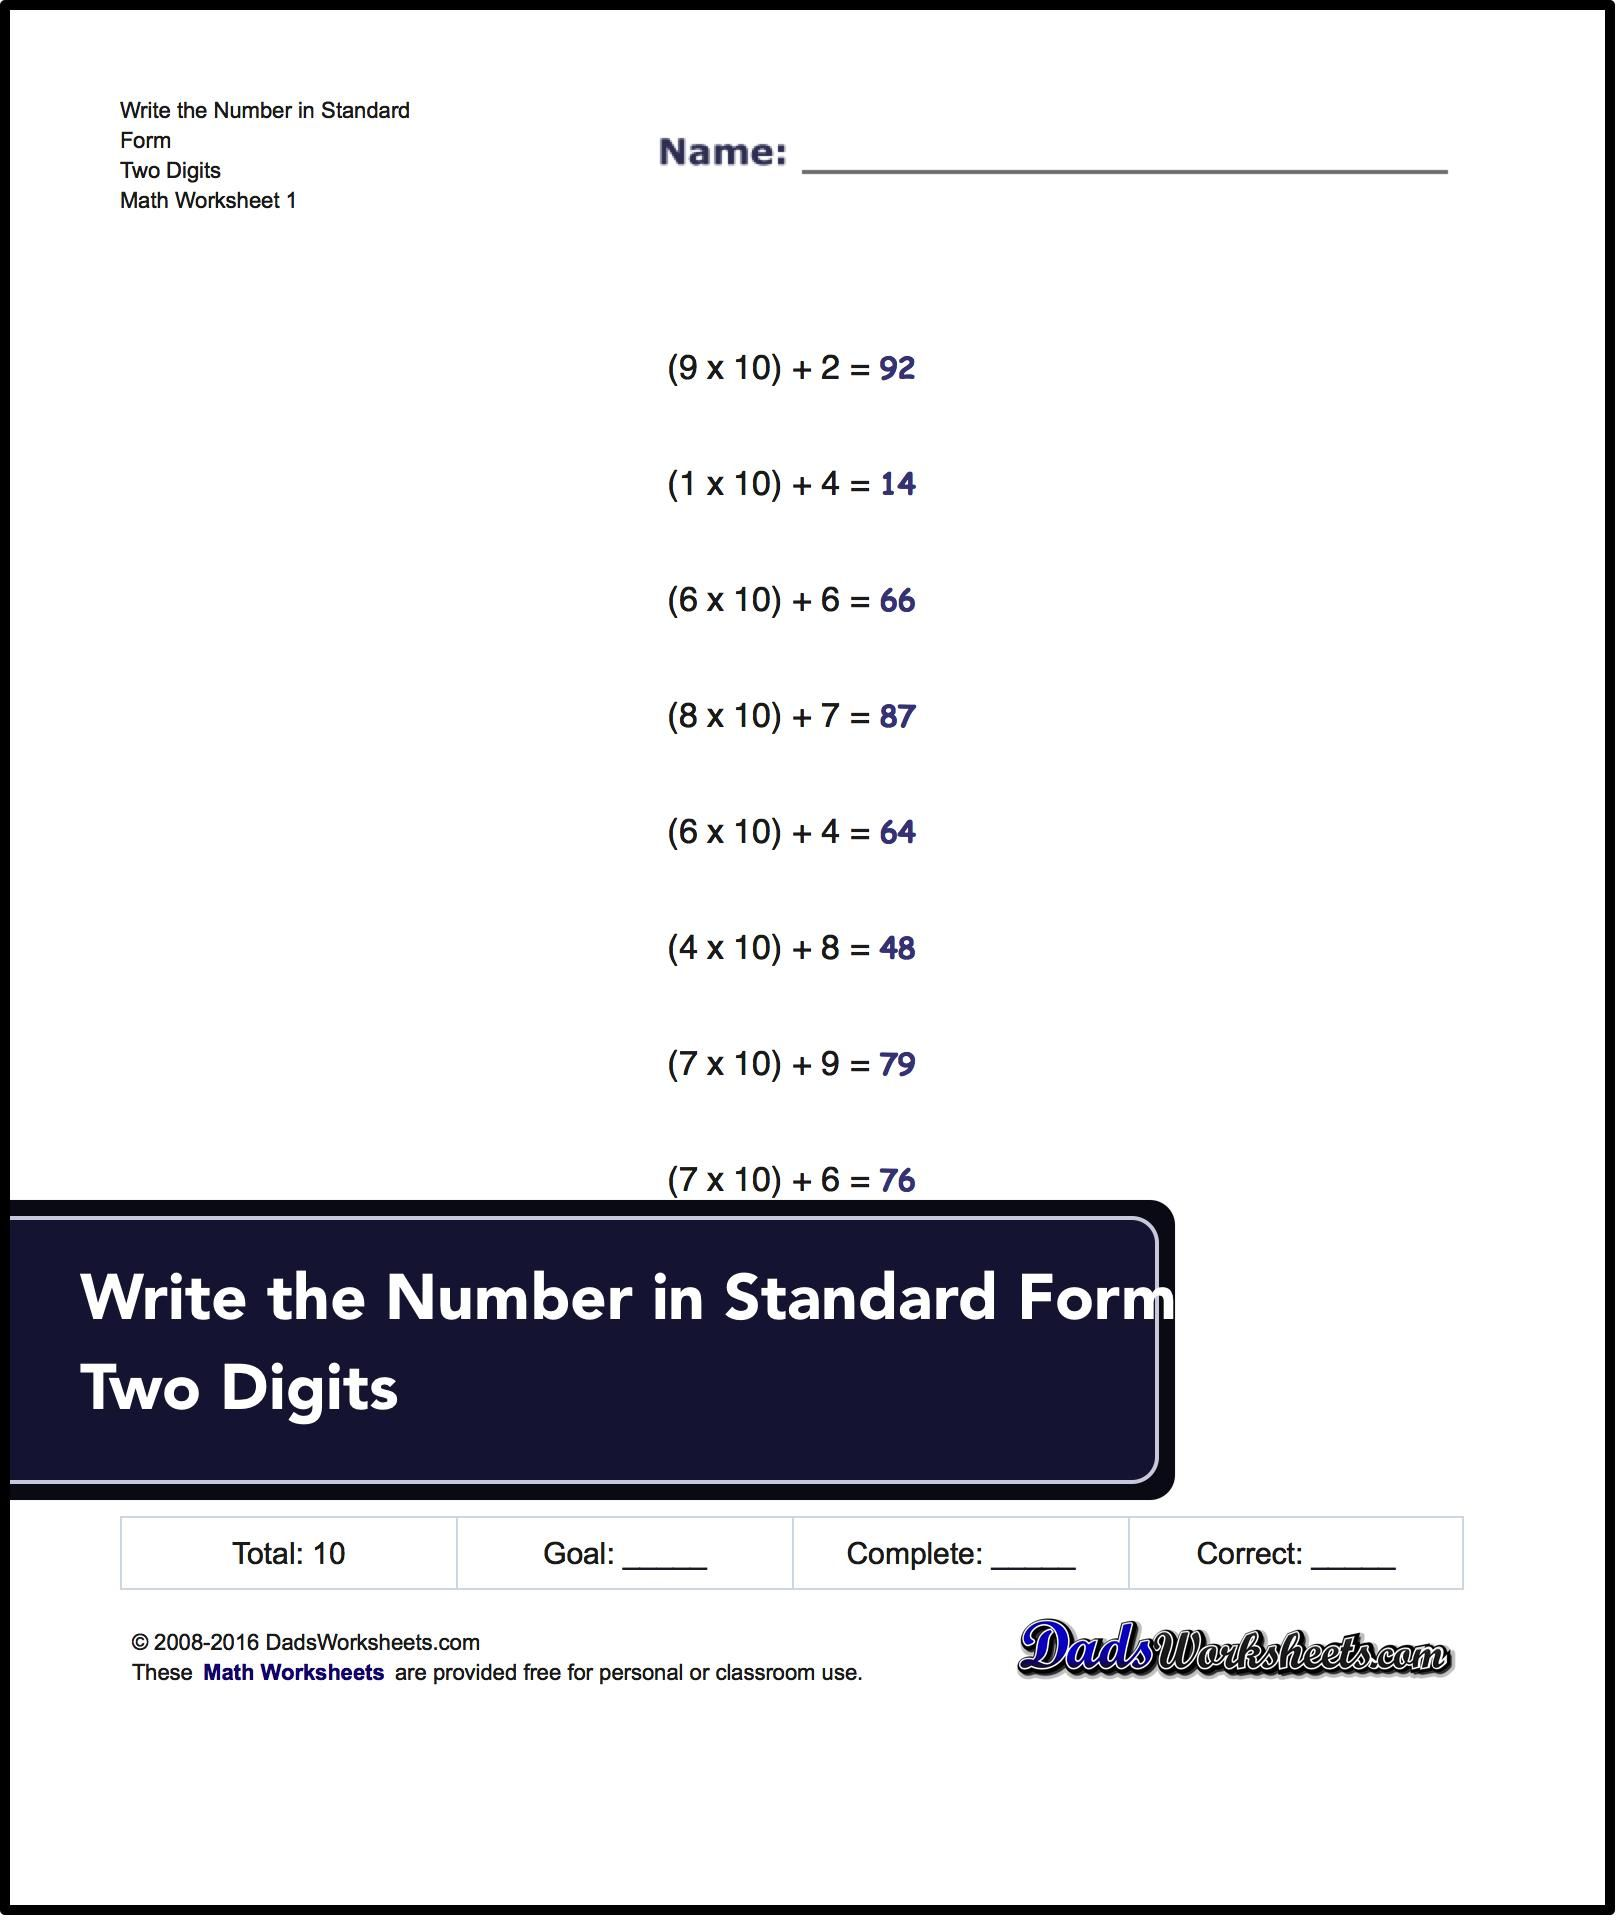 Practice expanded form worksheets for converting numbers from